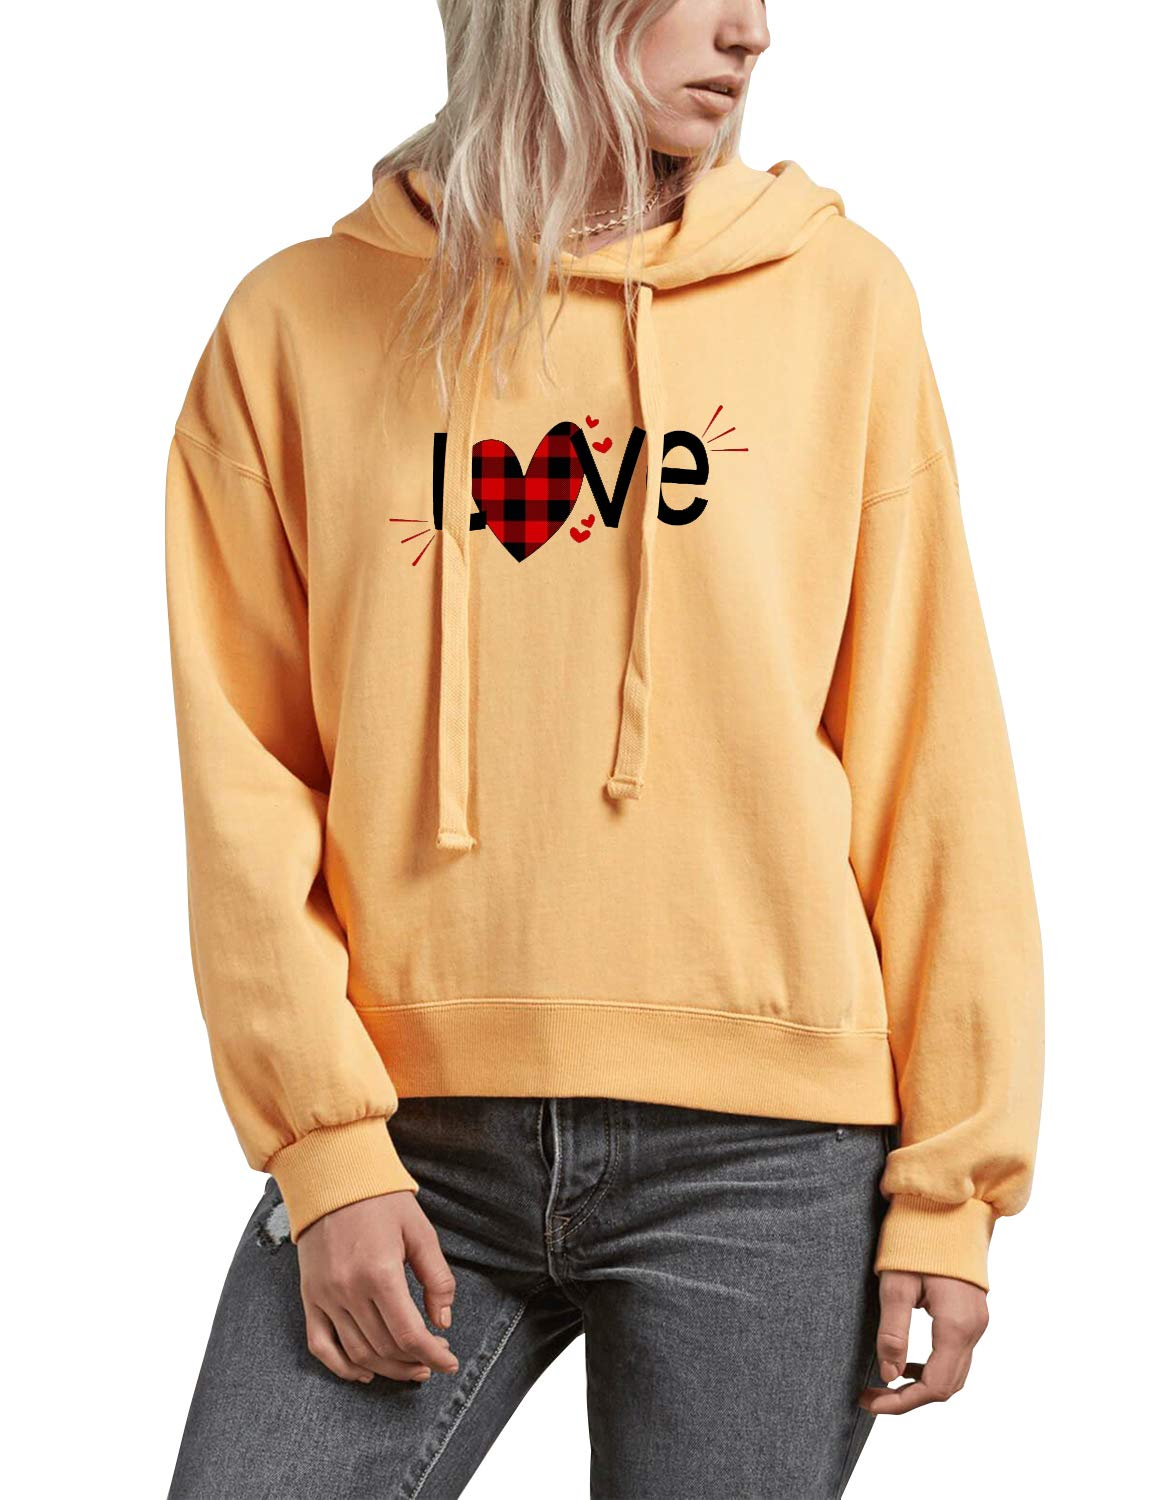 Blooming Jelly Women's Love Shirt Letter Print Long Sleeve Pullover Hoodie Yellow